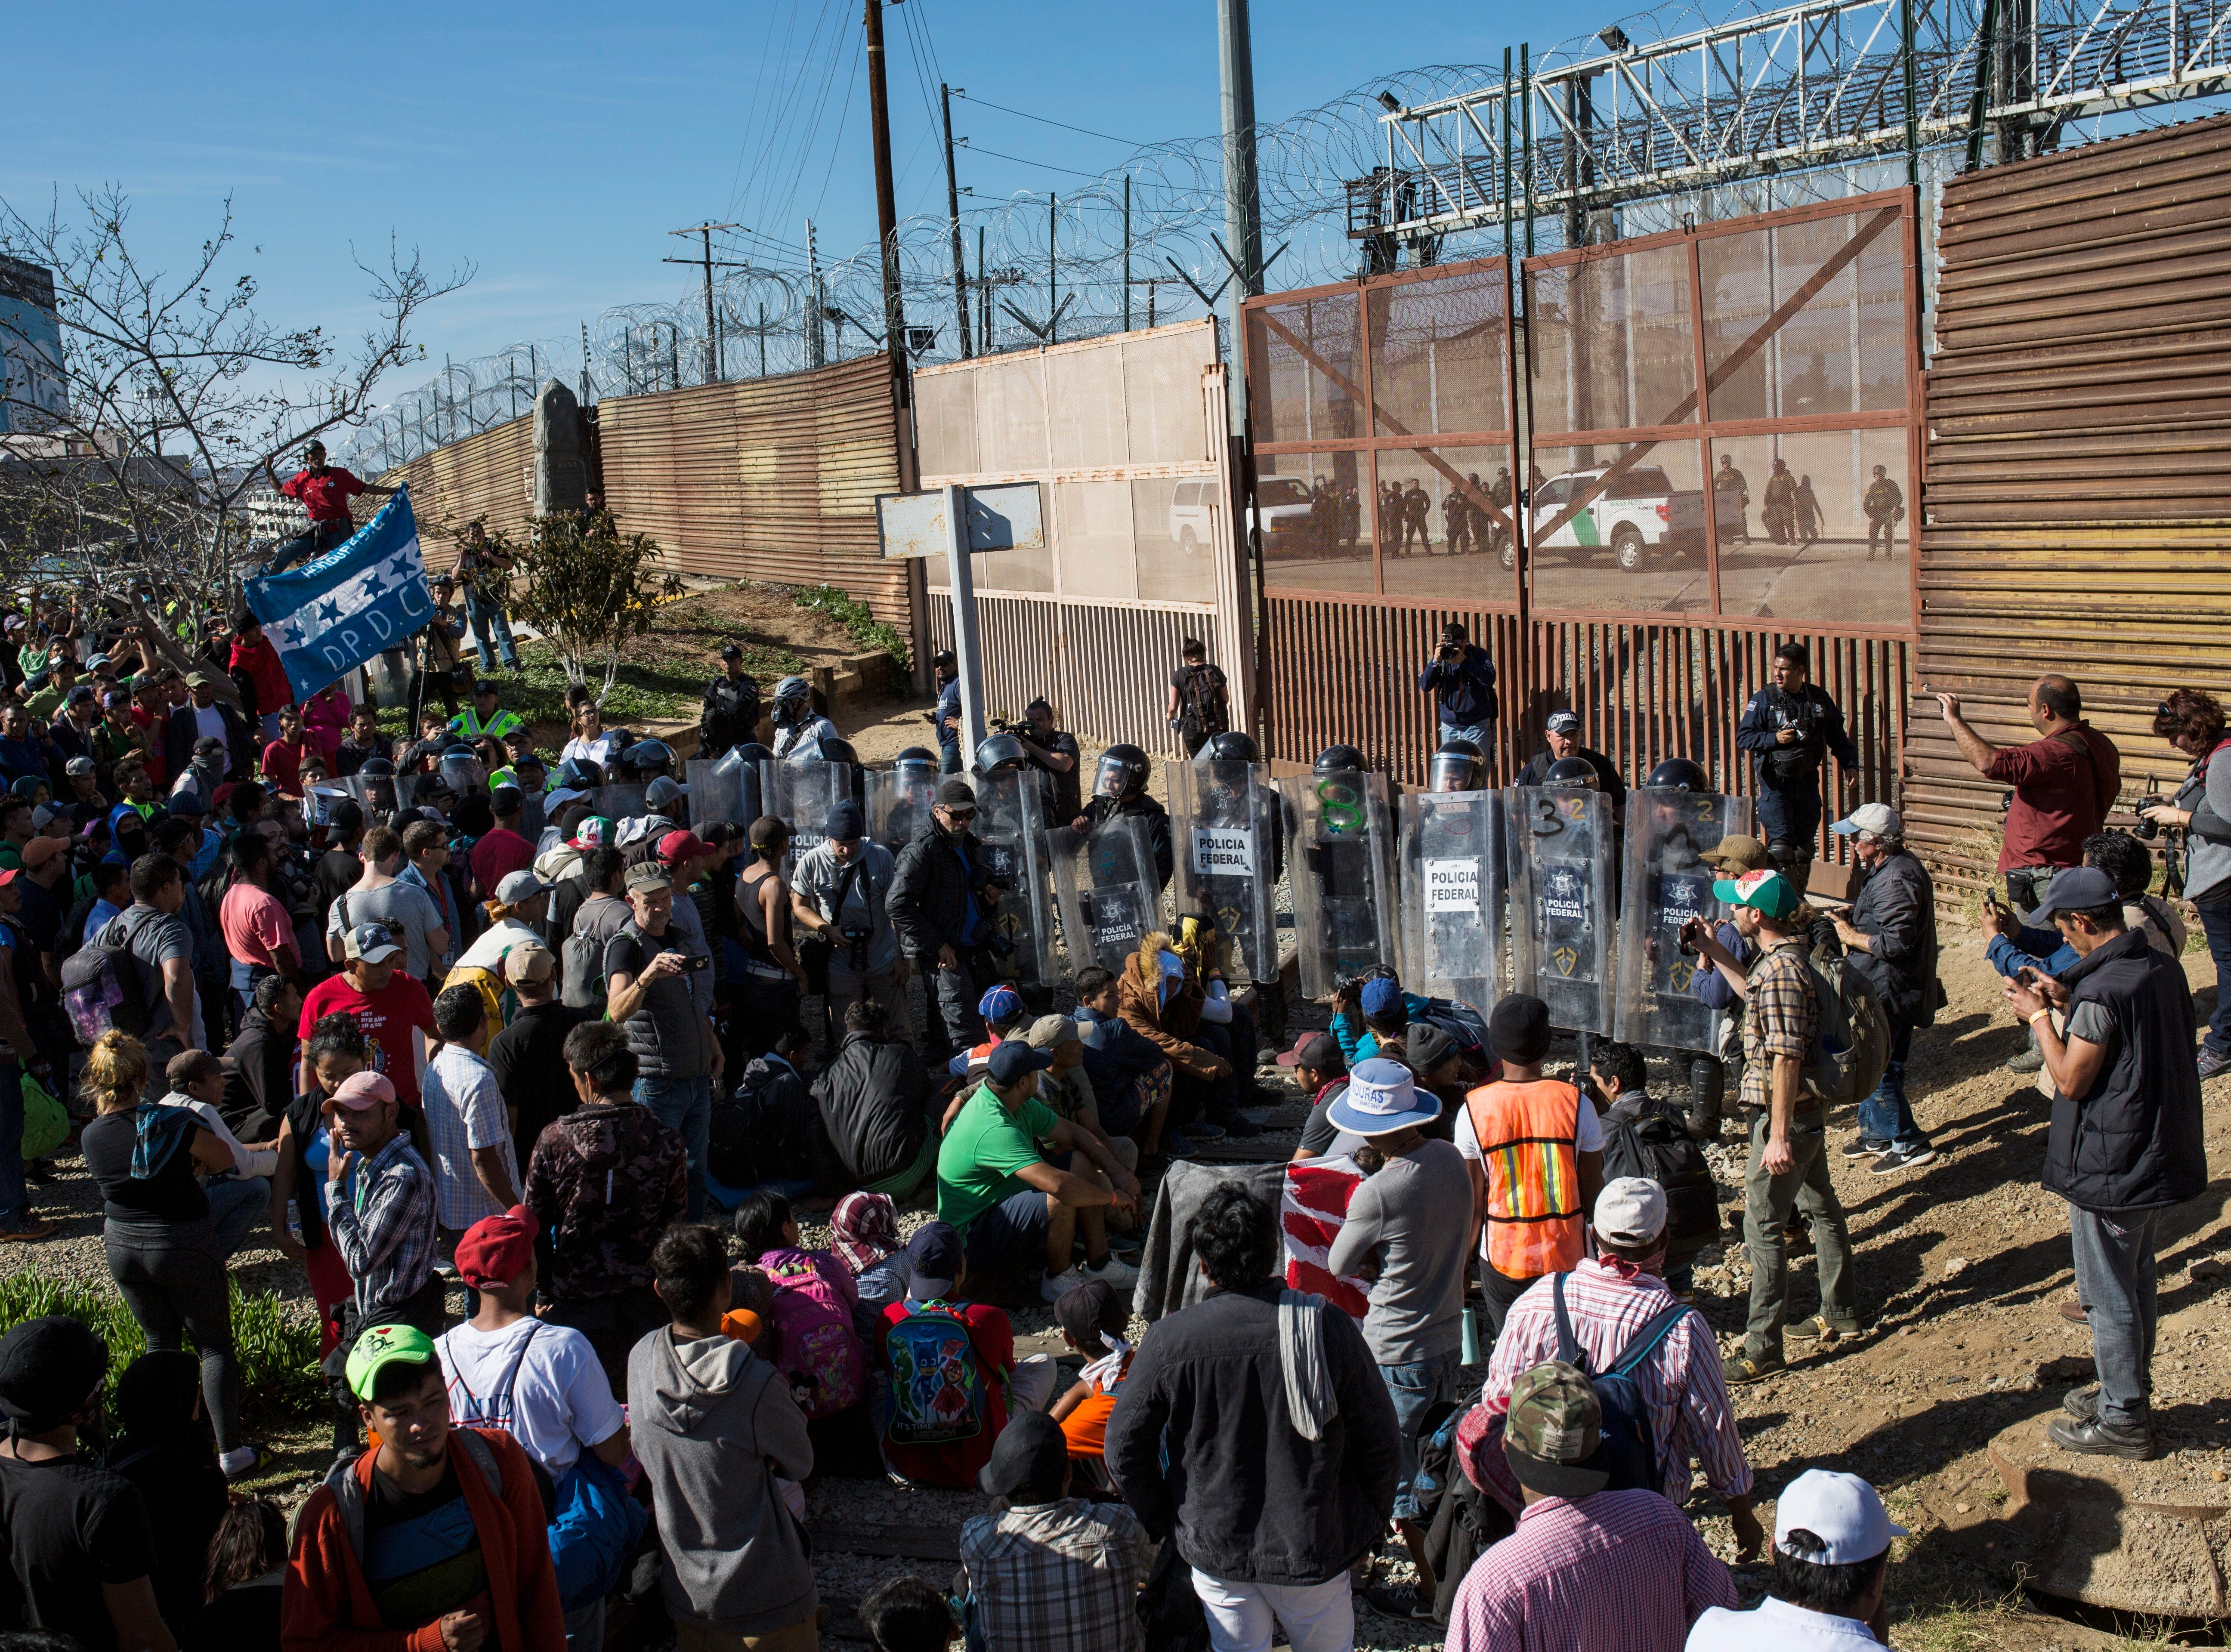 Migrants stand at the Mexico-U.S. border wall where Mexican federal police stand guard at the Chaparral crossing in Tijuana, Mexico, Sunday, Nov. 25, 2018, as they try to reach the U.S. The mayor of Tijuana has declared a humanitarian crisis in his border city and says that he has asked the United Nations for aid to deal with the approximately 5,000 Central American migrants who have arrived in the city.